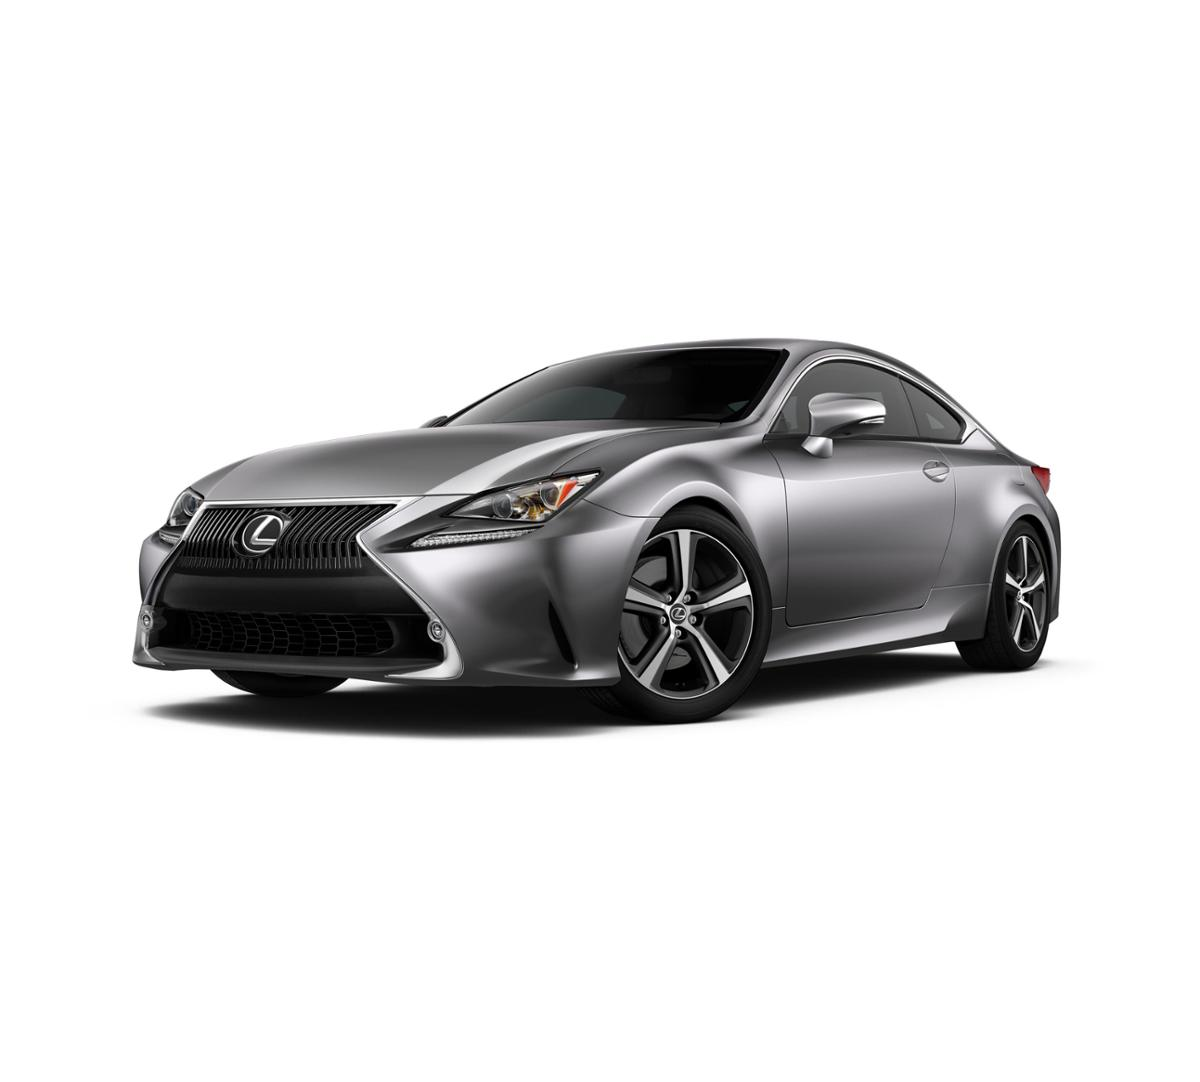 2017 Lexus Rc Exterior: 2017 Nebula Gray Pearl Lexus RC Turbo For Sale In San